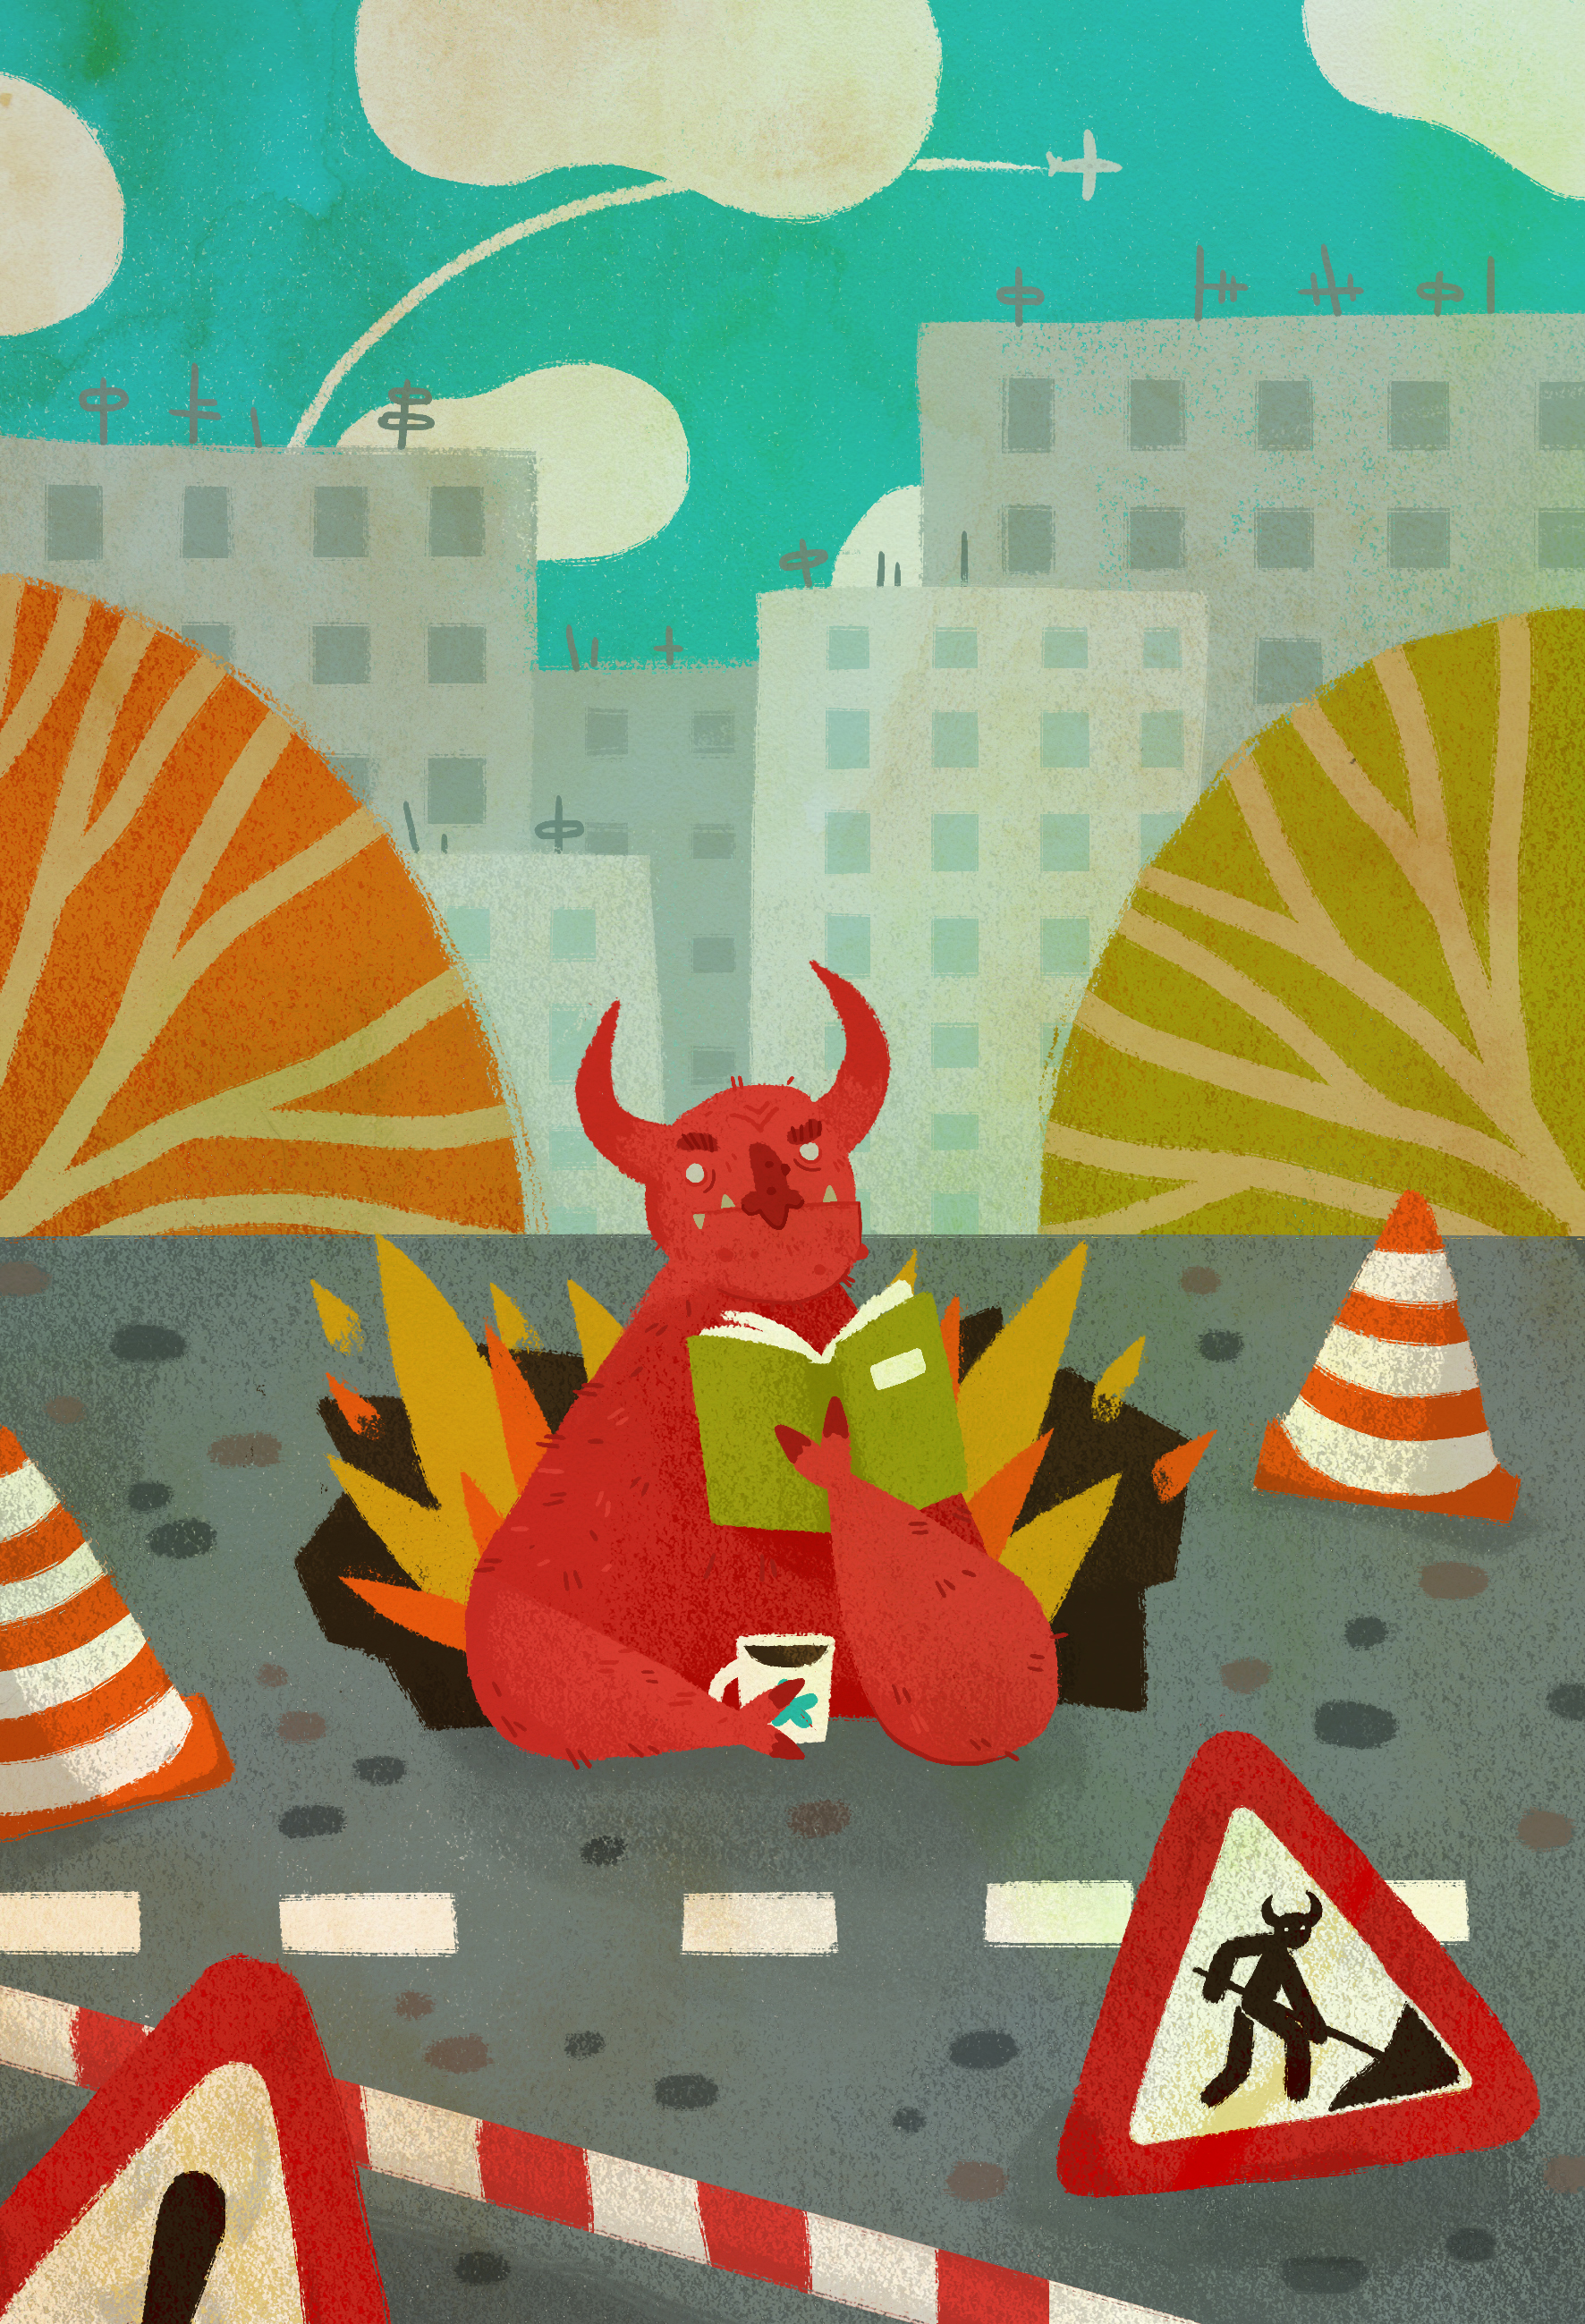 Devil on a Road